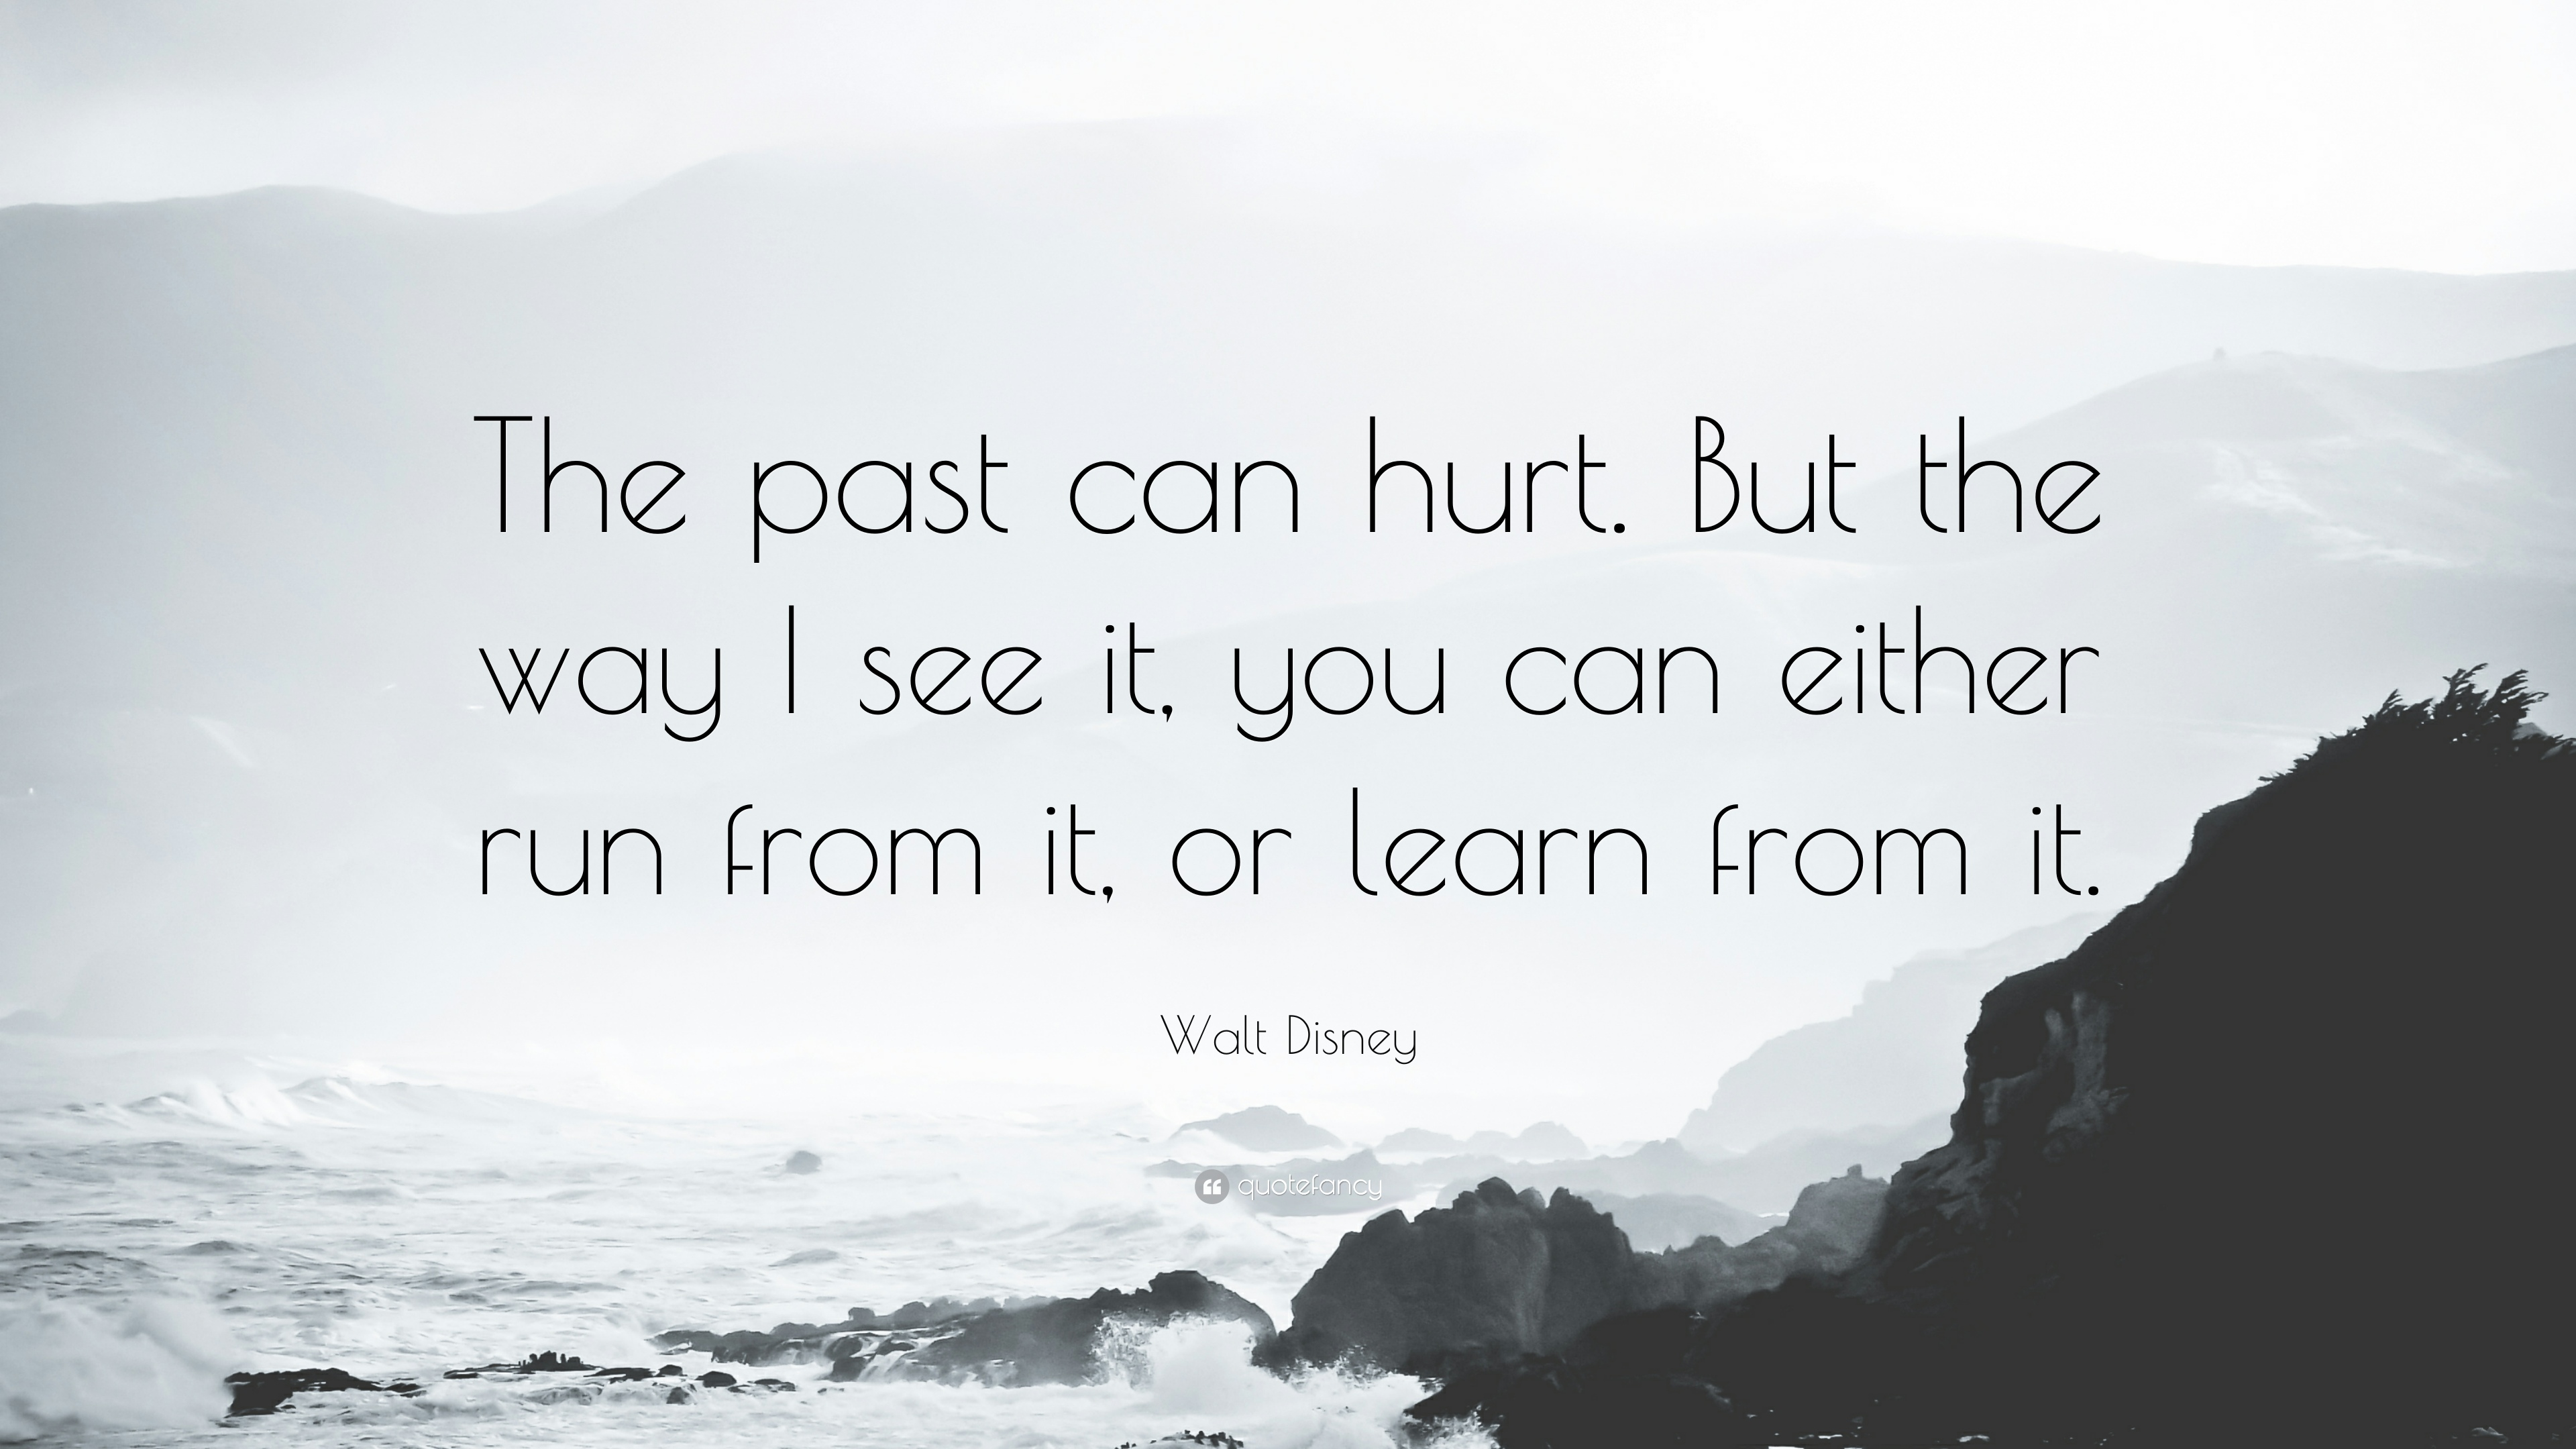 Quotes About Hurt Hurt Quotes 40 Wallpapers  Quotefancy